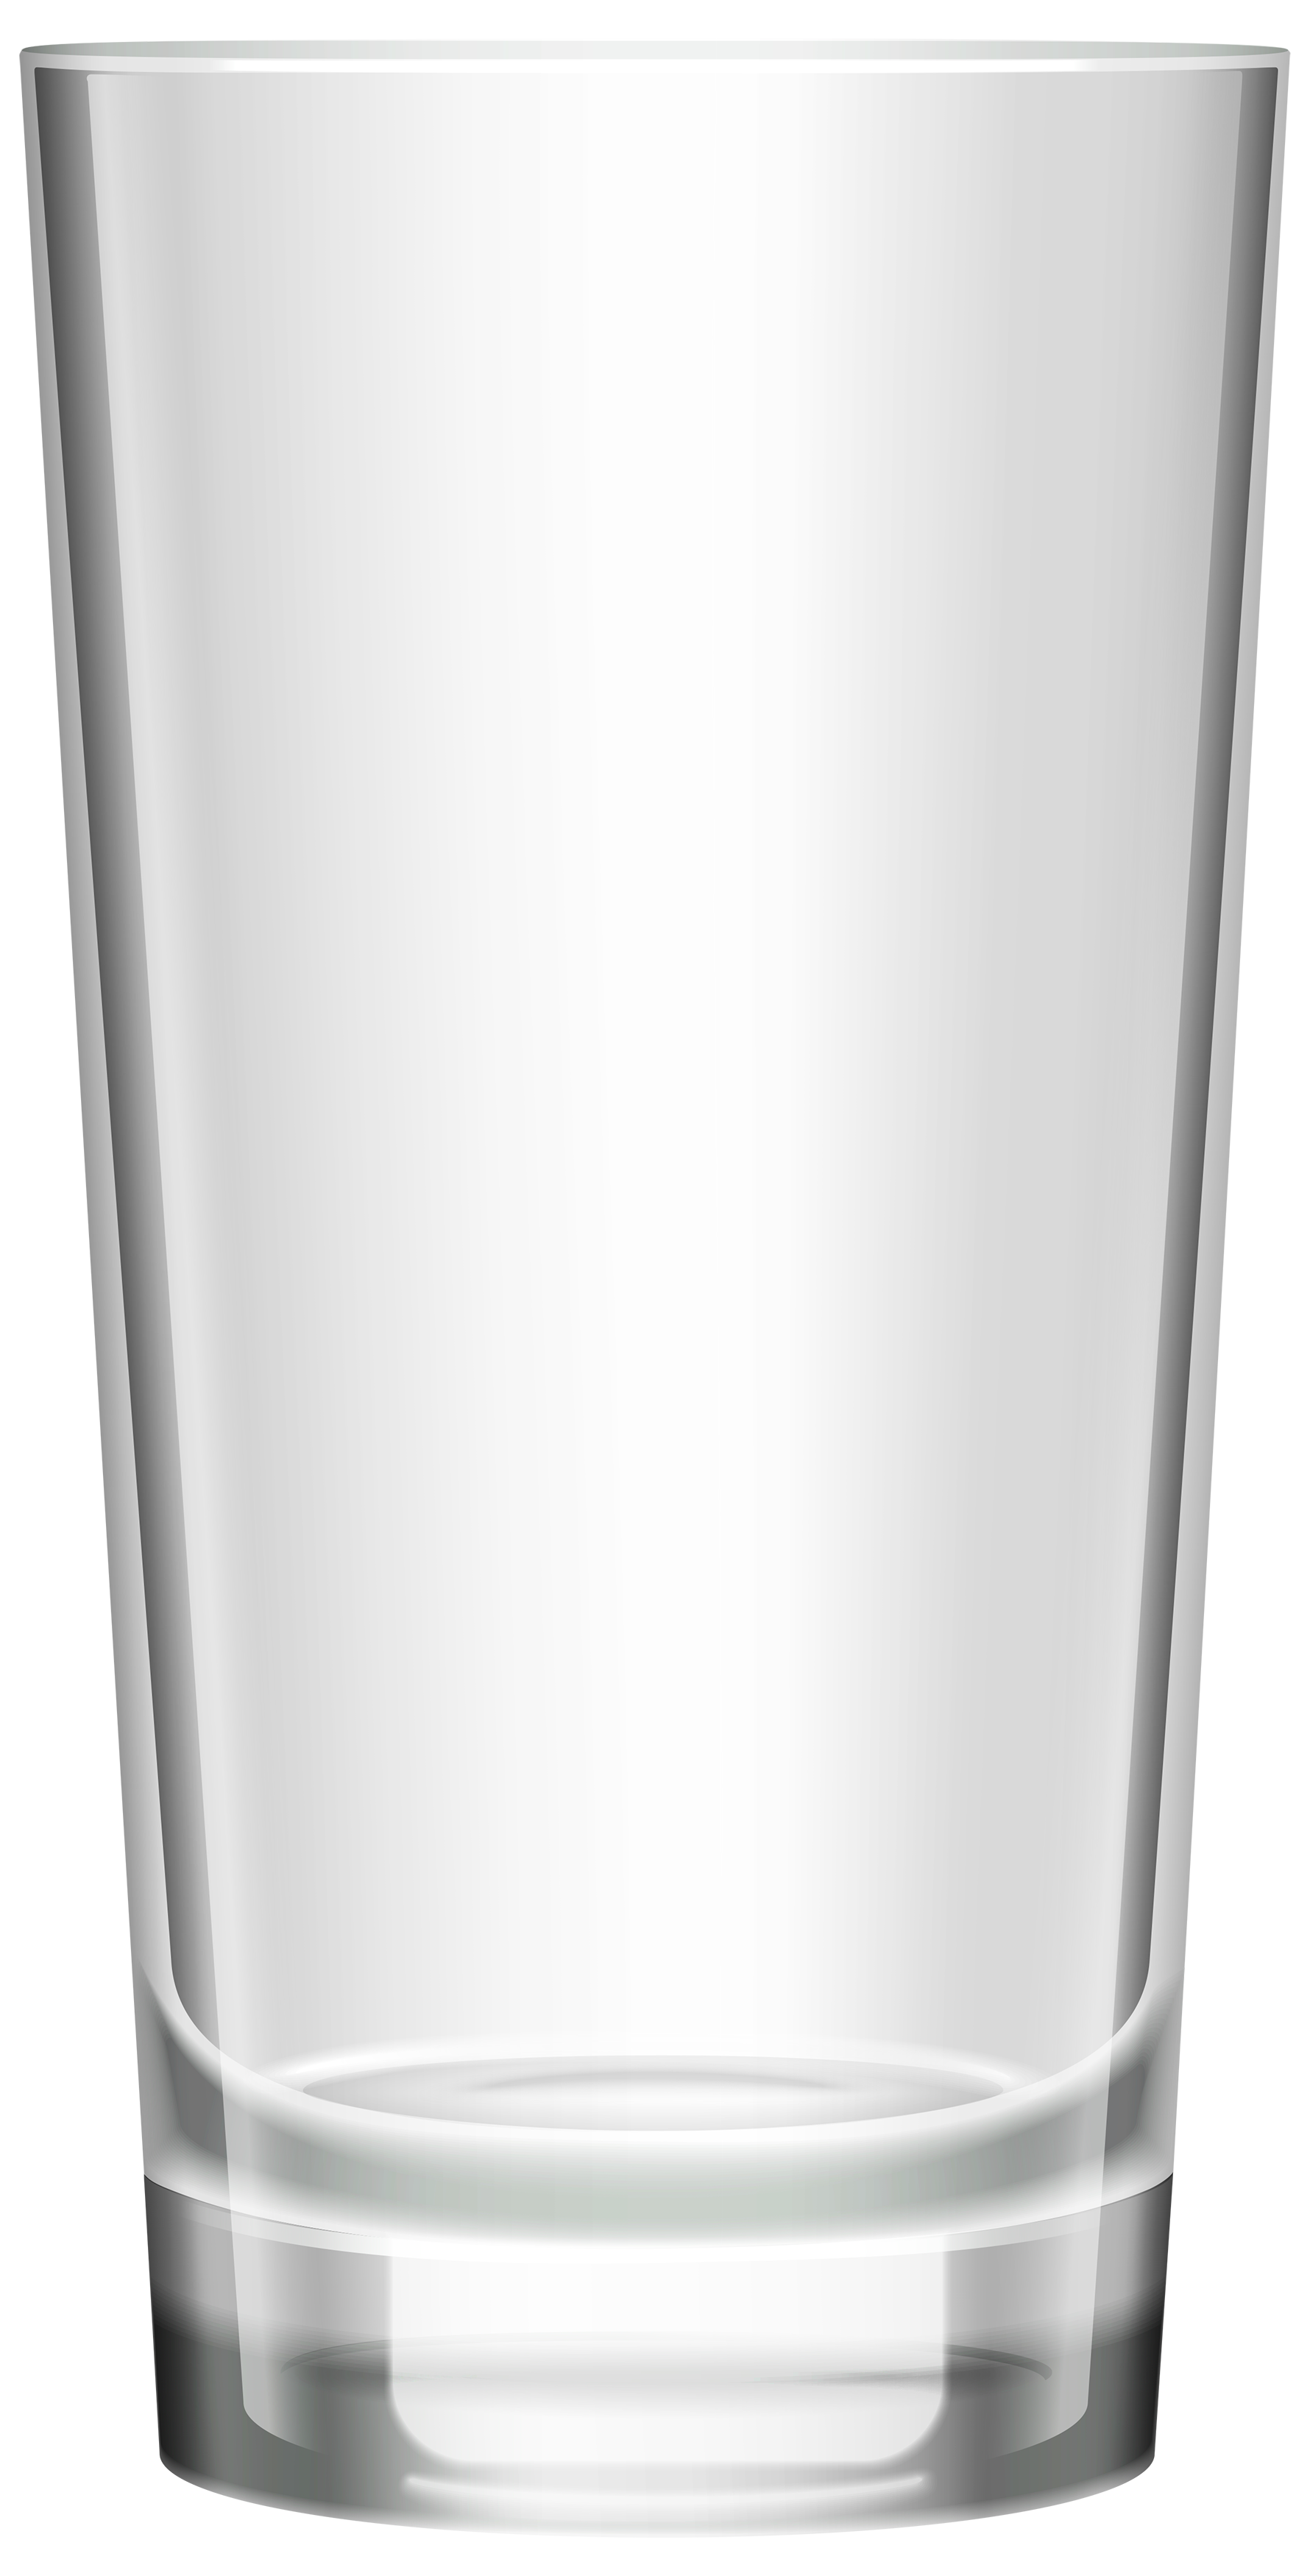 White candles in glass png hd. Clipart best web